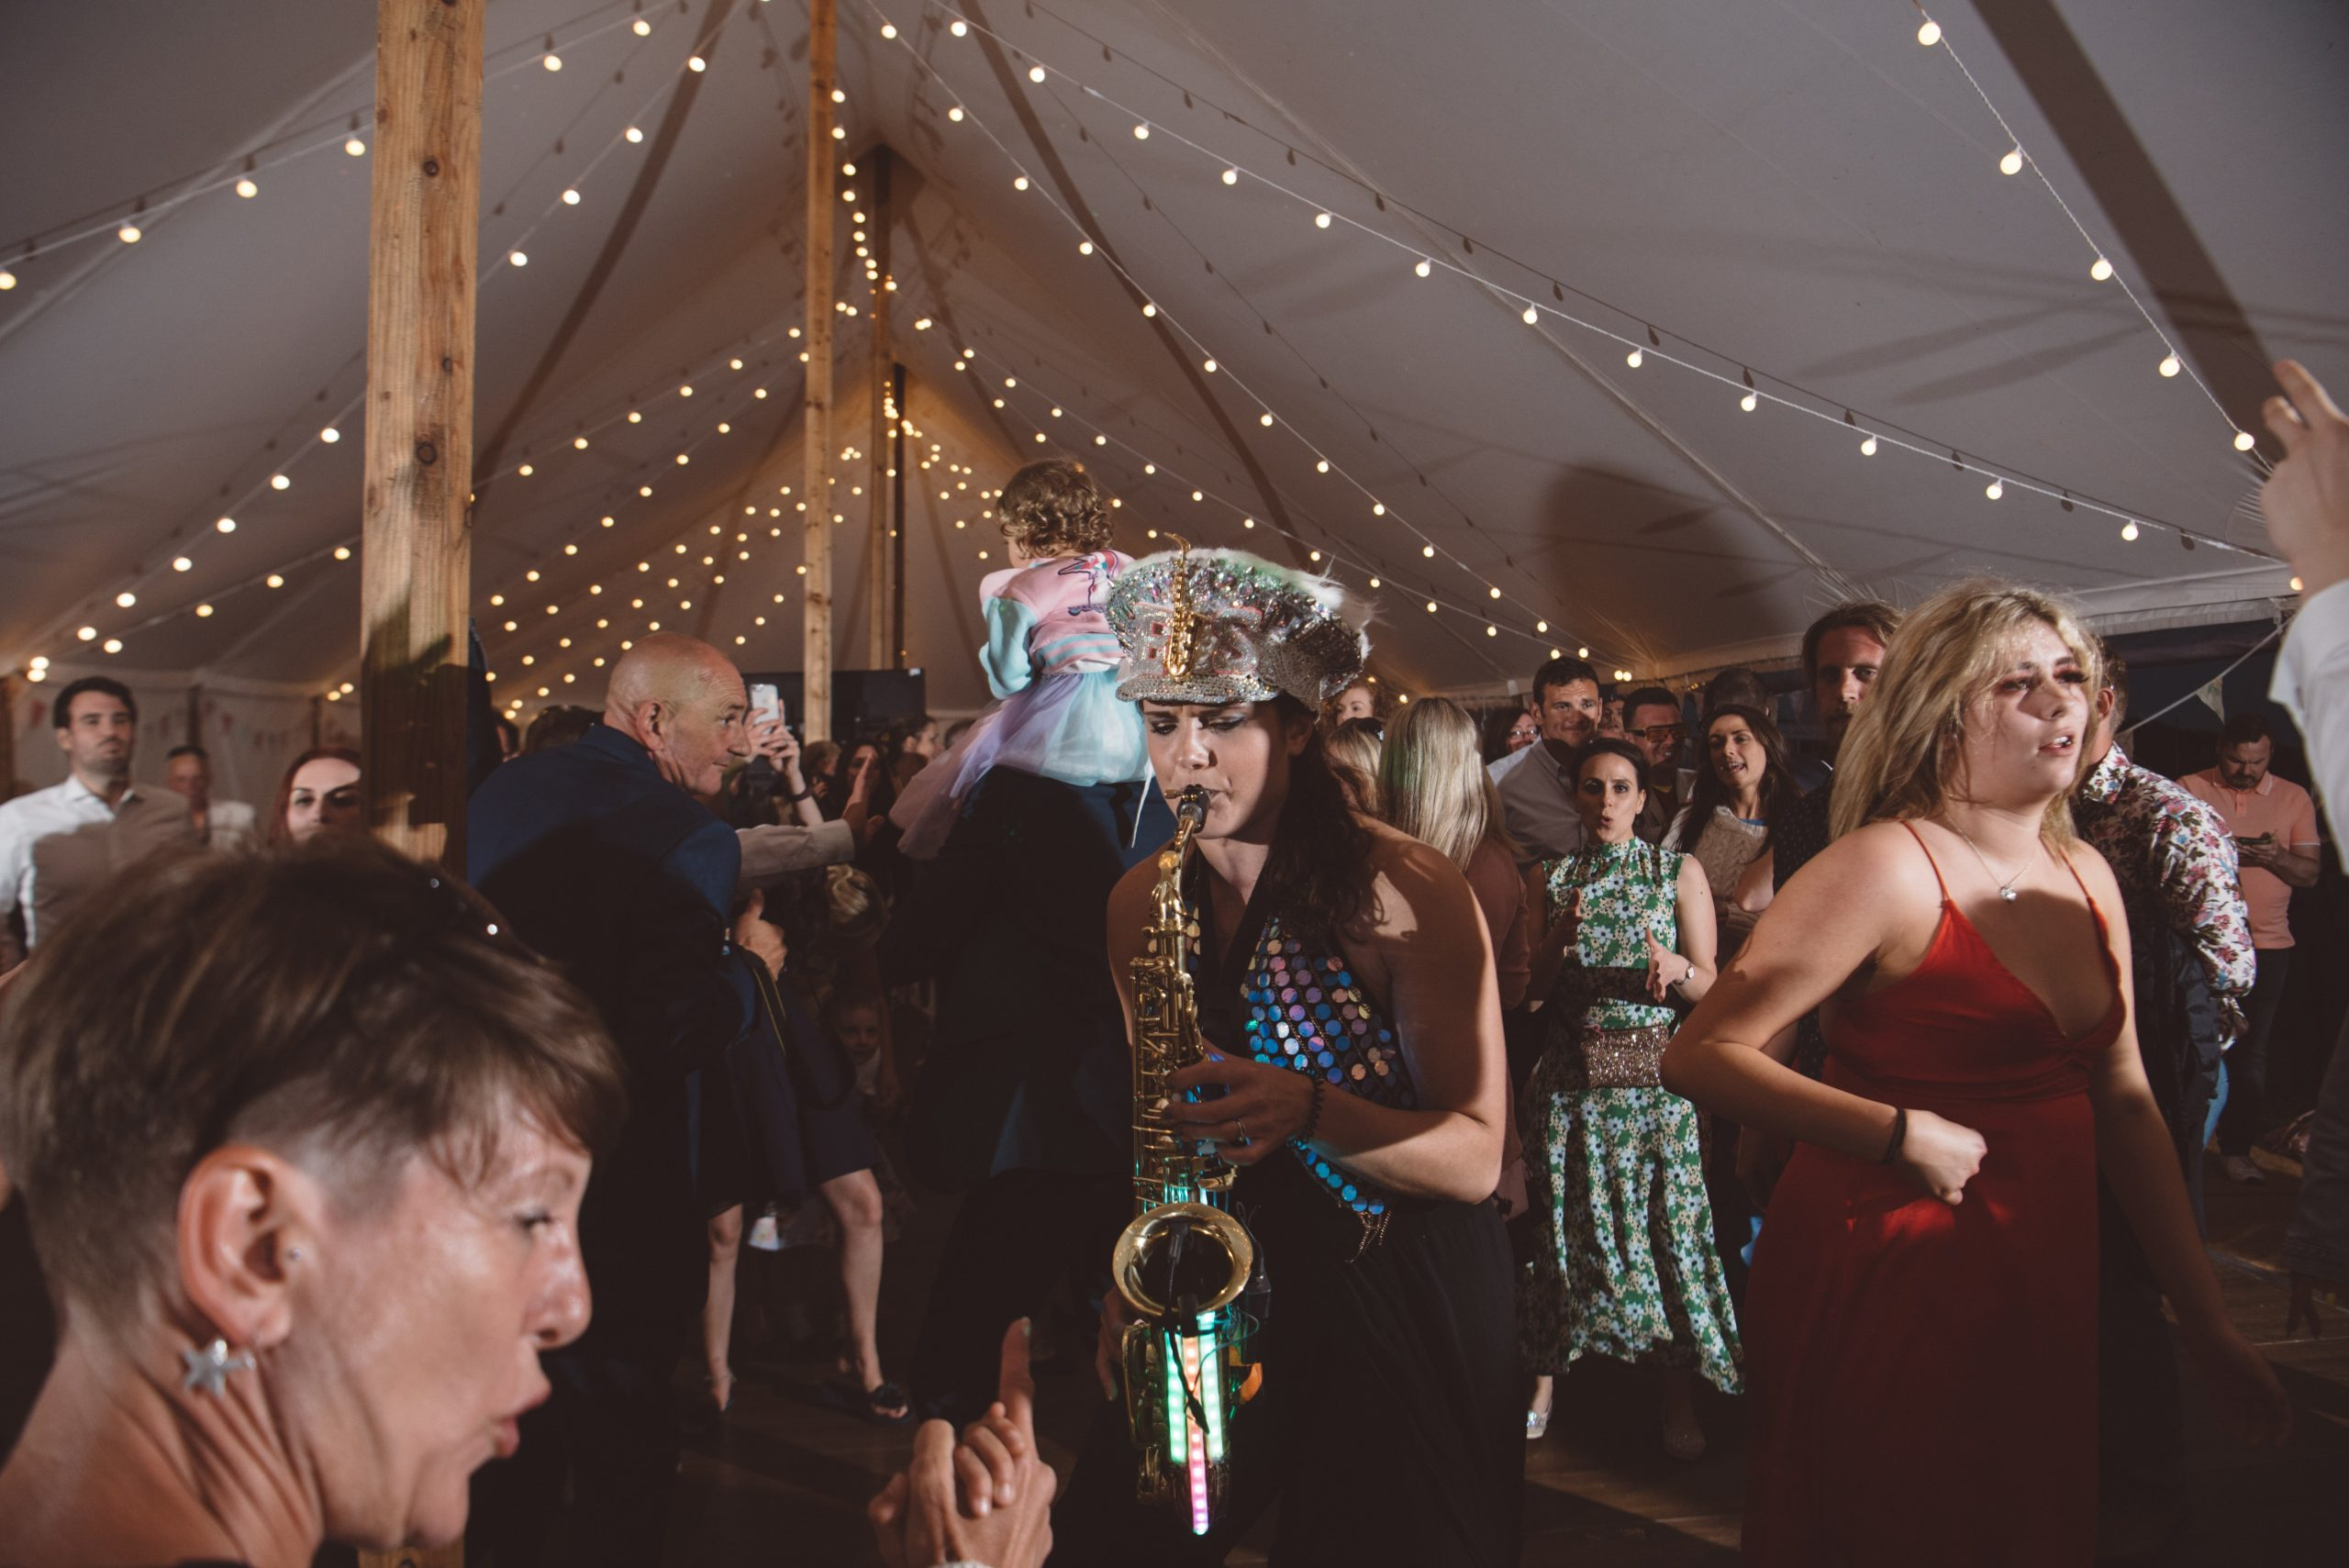 Candid photo of Ellie Sax at Carswell weddings